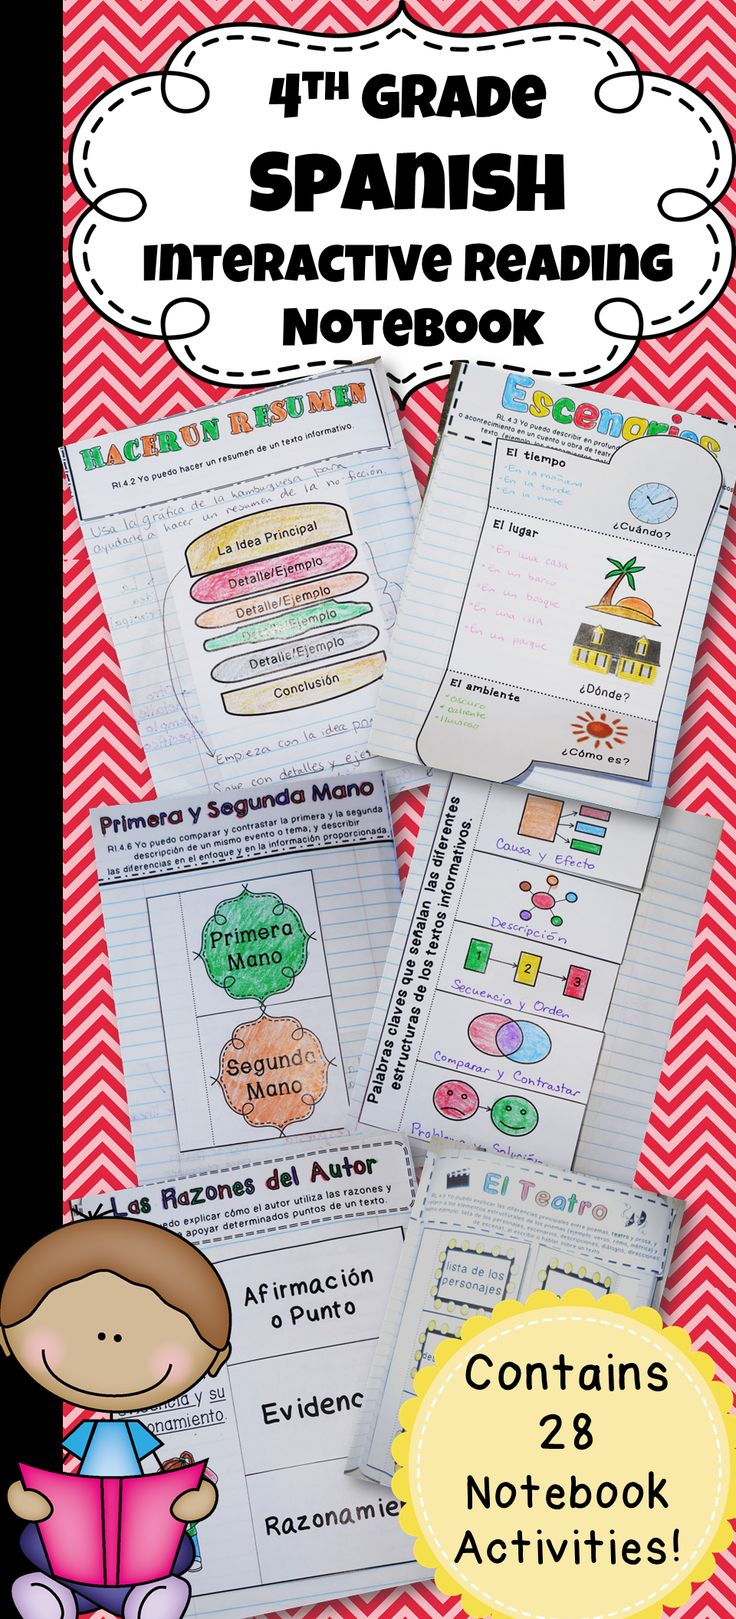 4th Grade Spanish Interactive Reading Notebook aligned with the Common Core standards for literature and informative text.